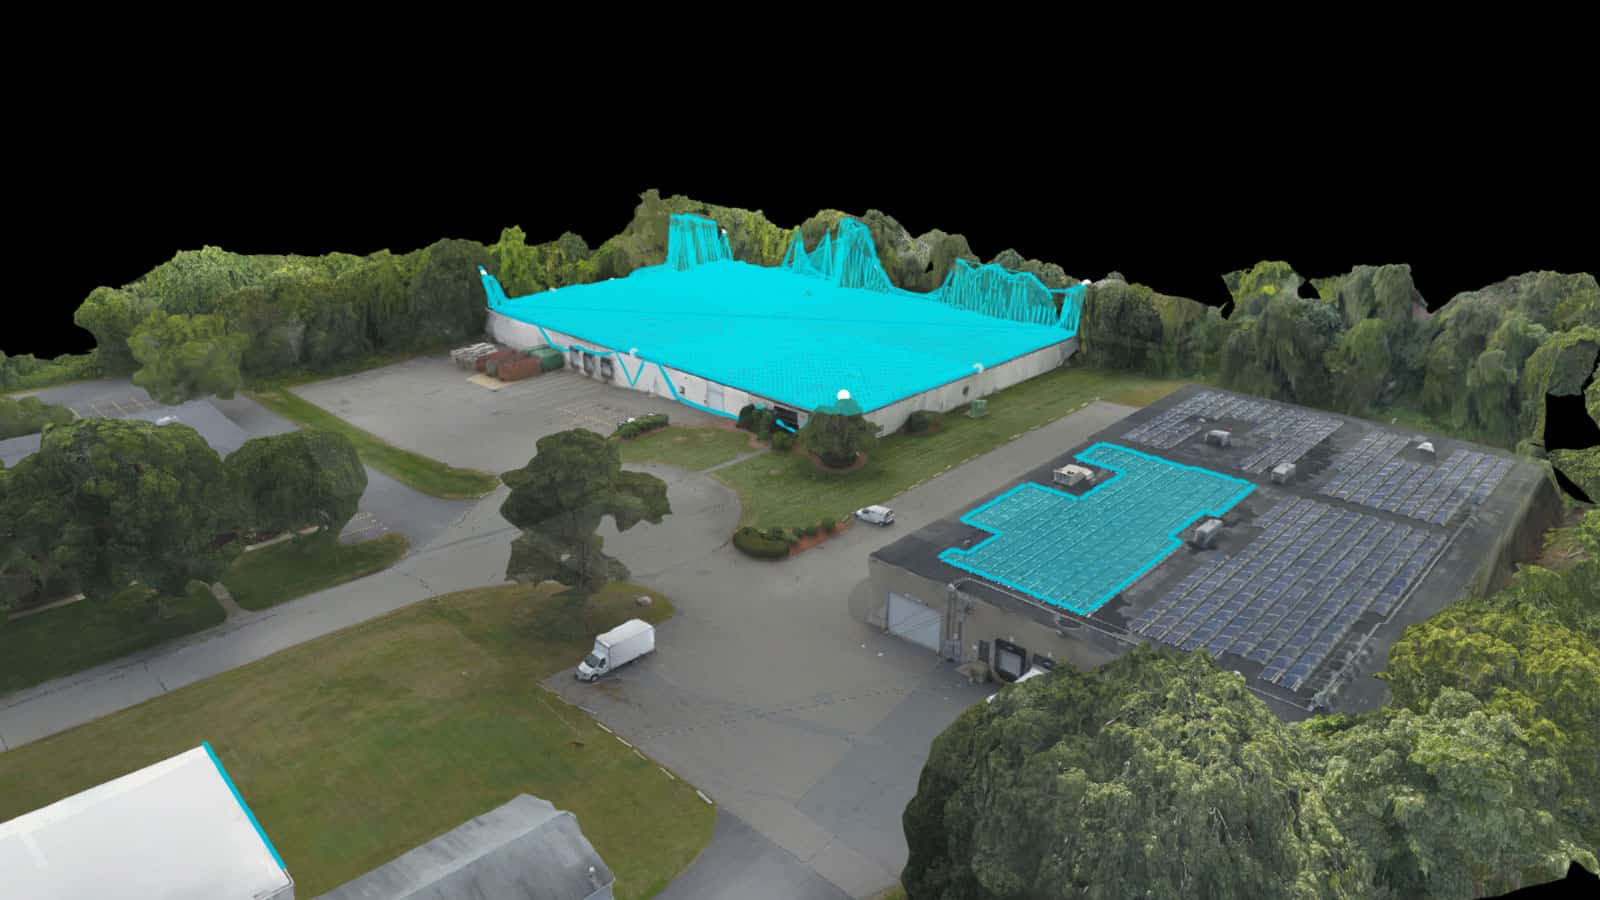 3D model taken by drone of property in Manassas, VA